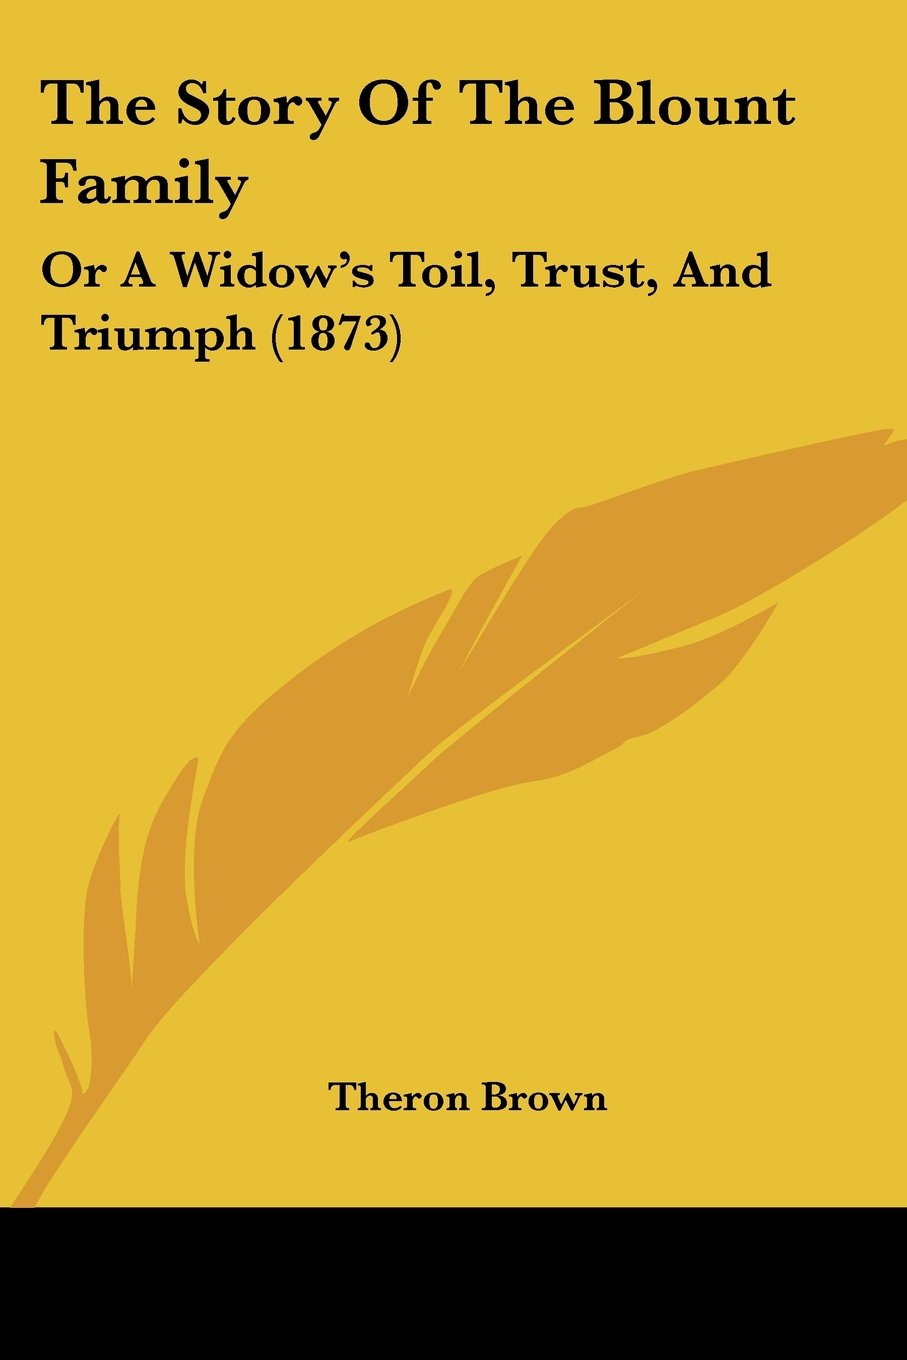 The Story Of The Blount Family: Or A Widow's Toil, Trust, And Triumph (1873) PDF